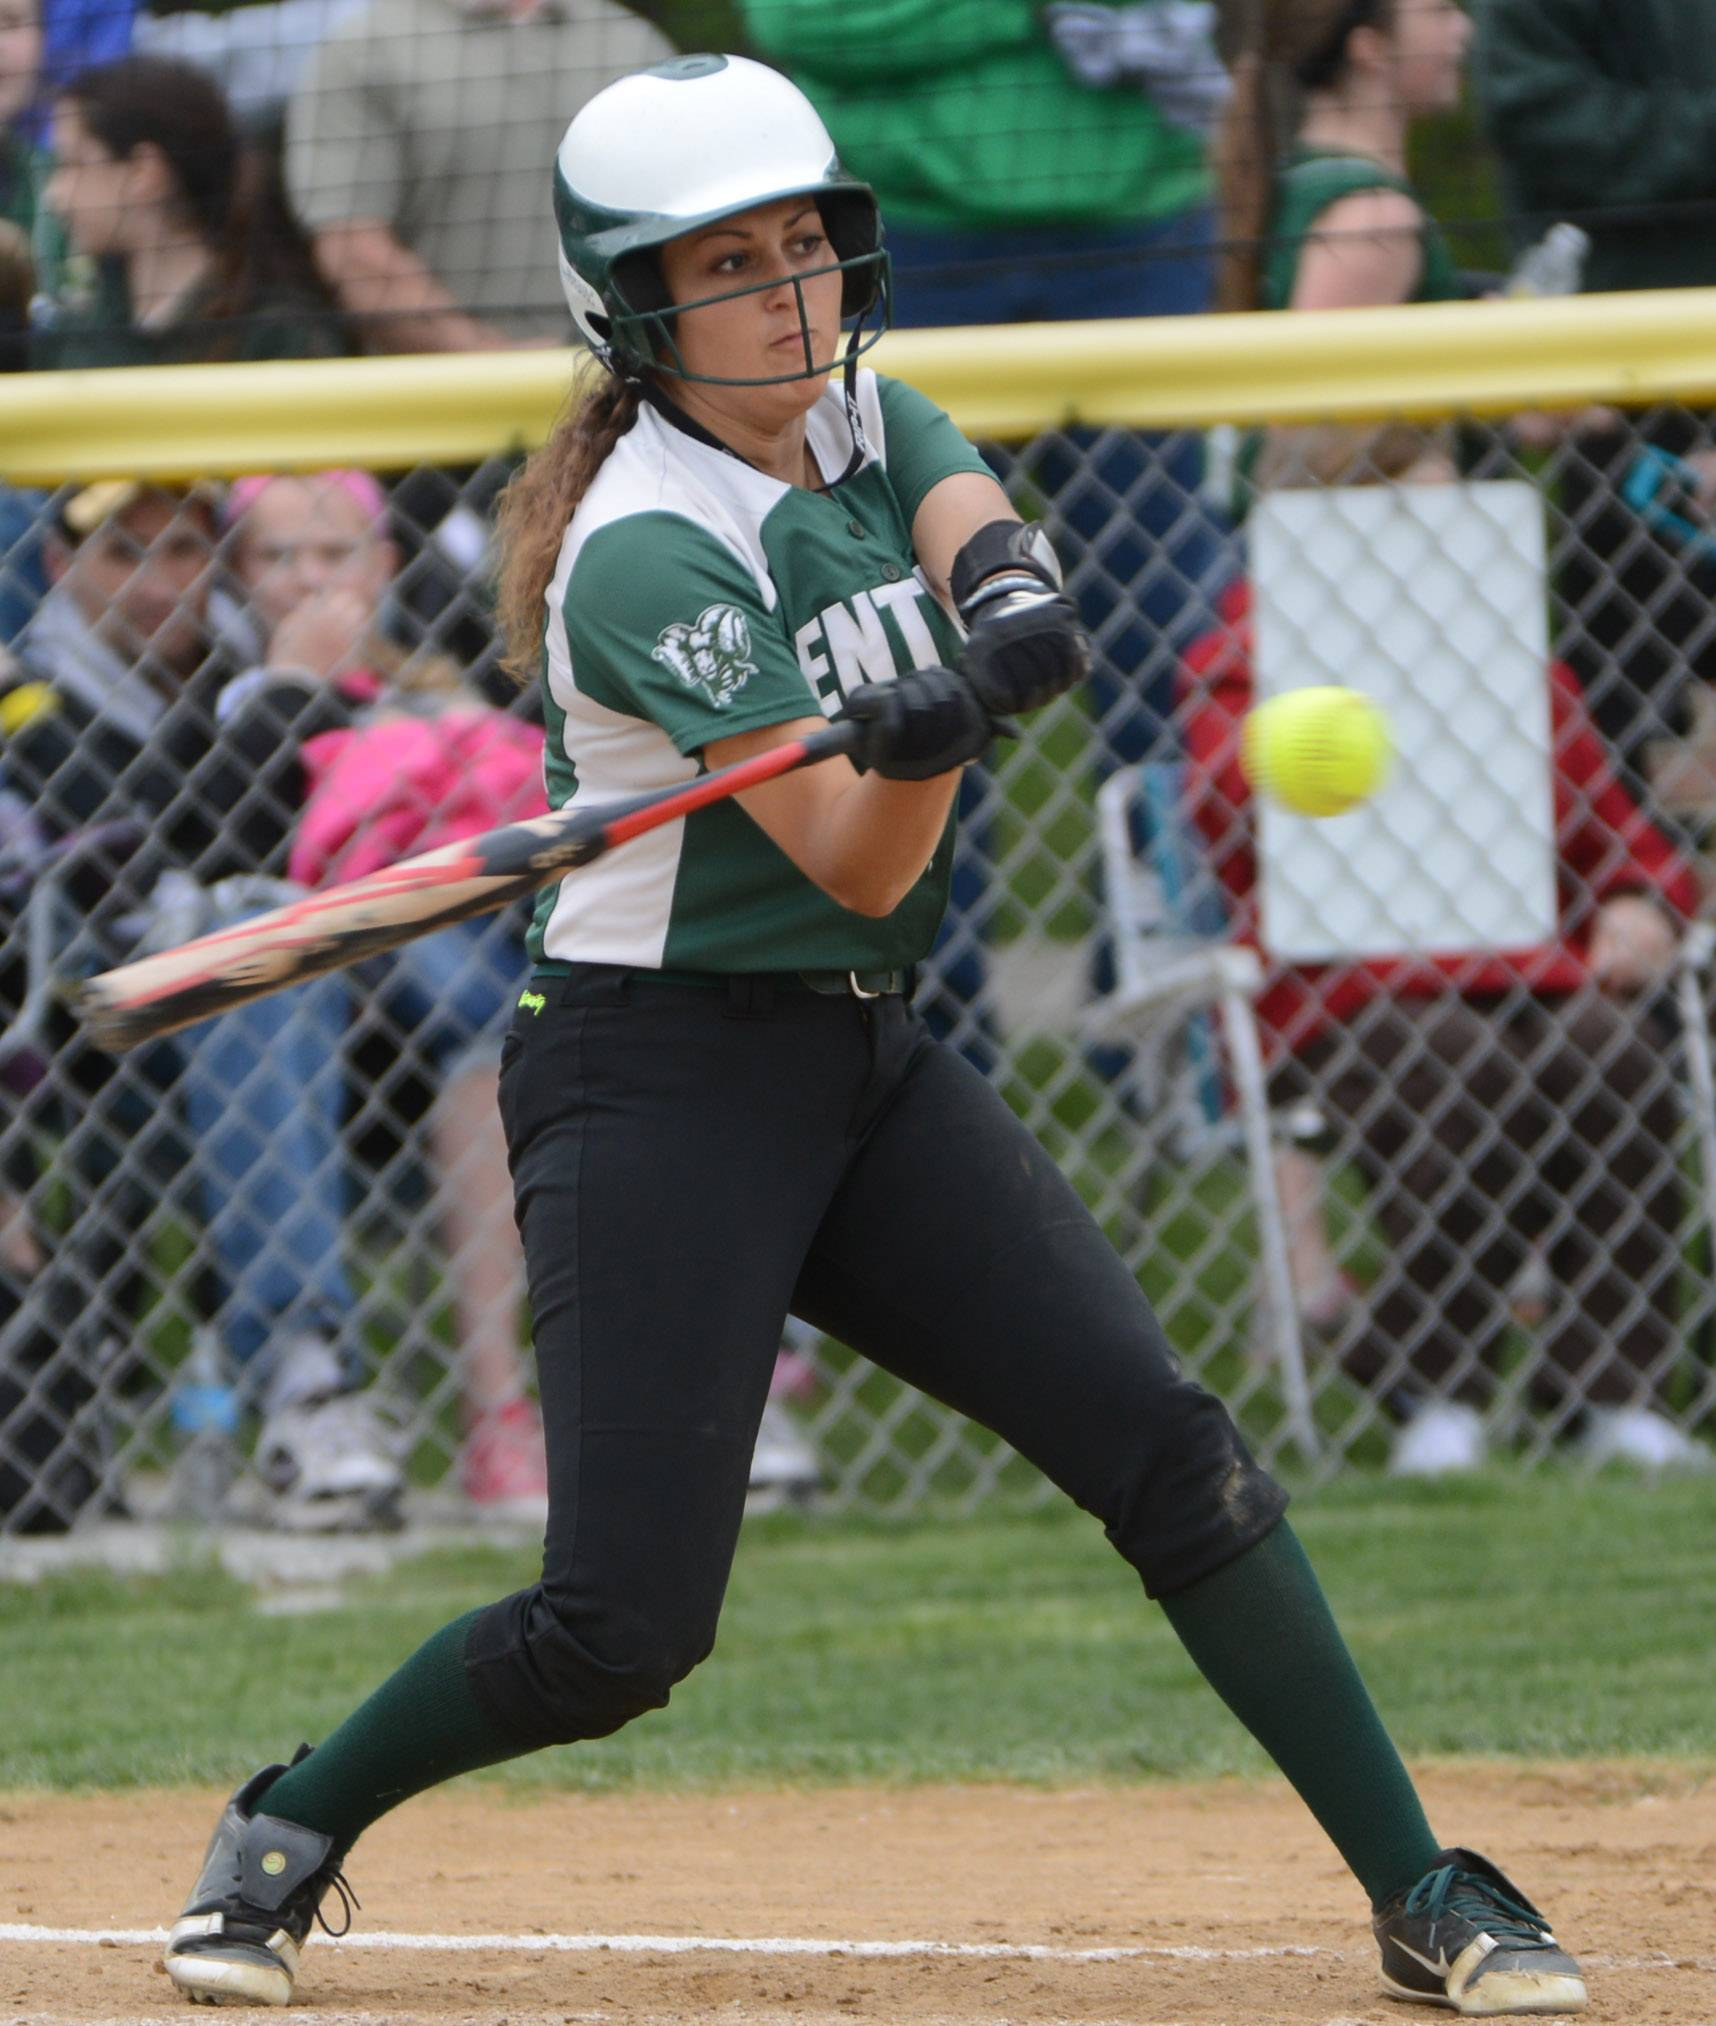 Grayslake Central's Juliana Frusolone gets a hit against Grayslake North on Monday.